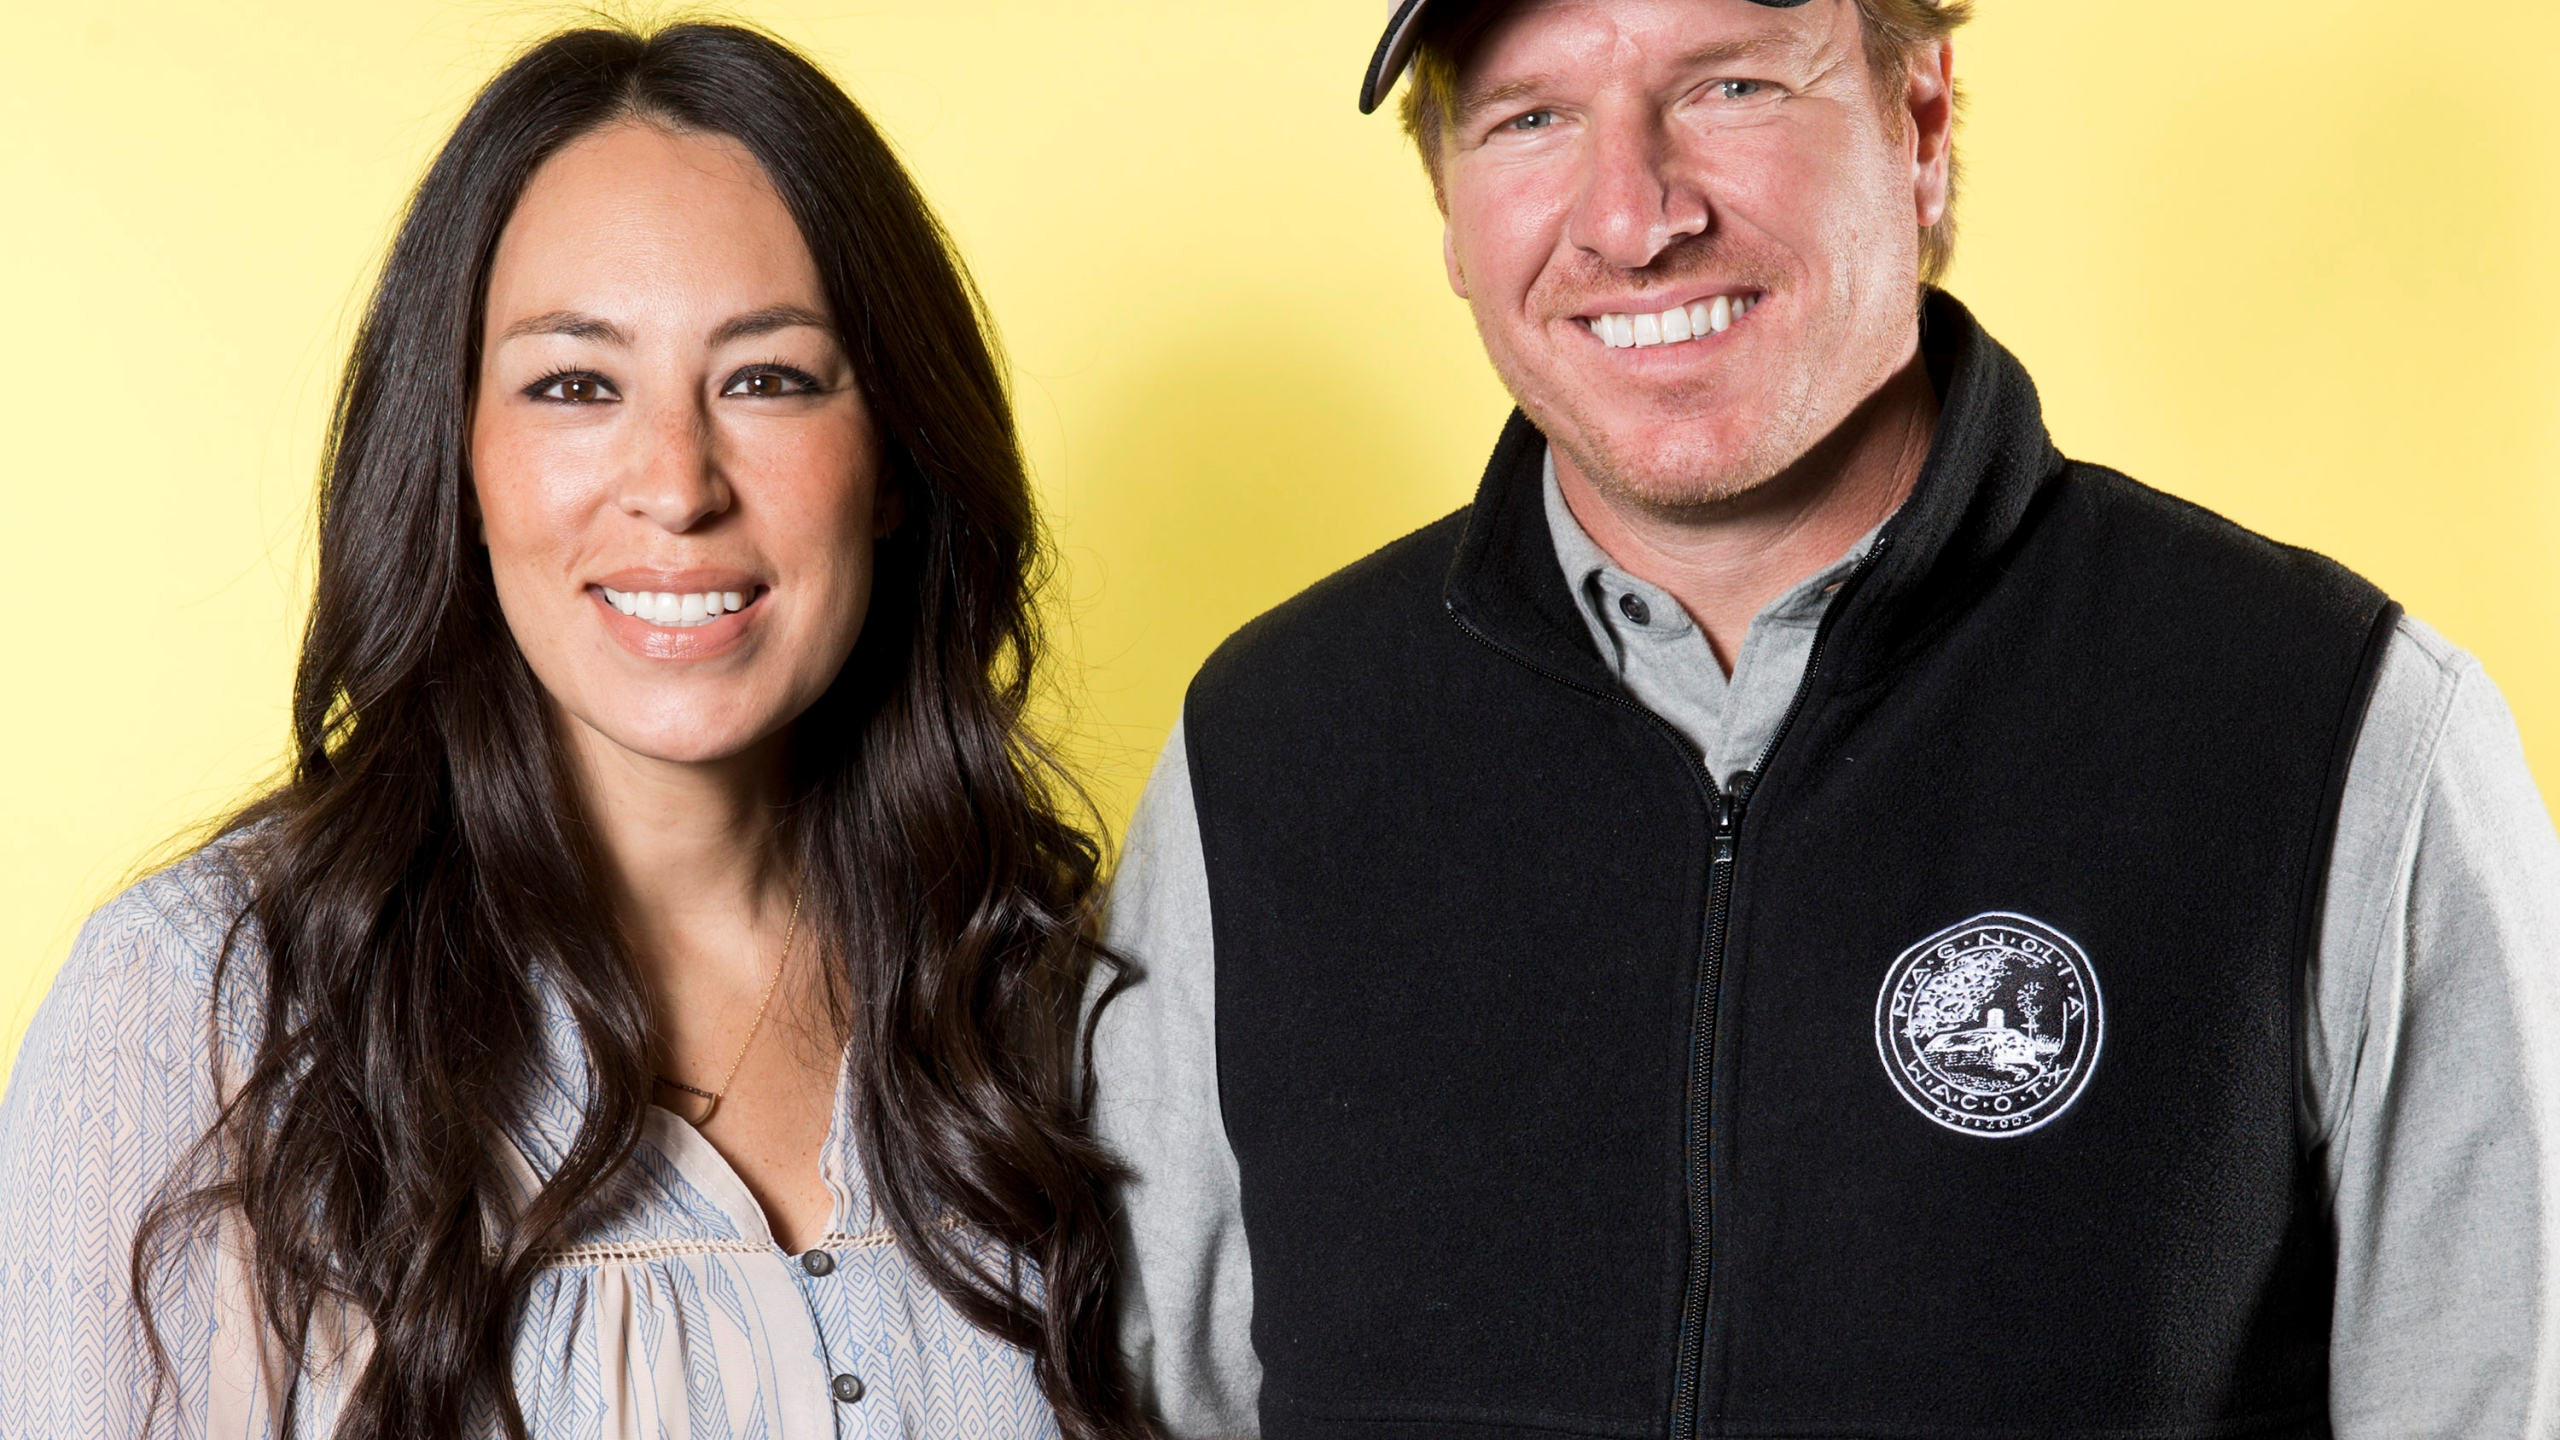 Joanna Gaines, Chip Gaines